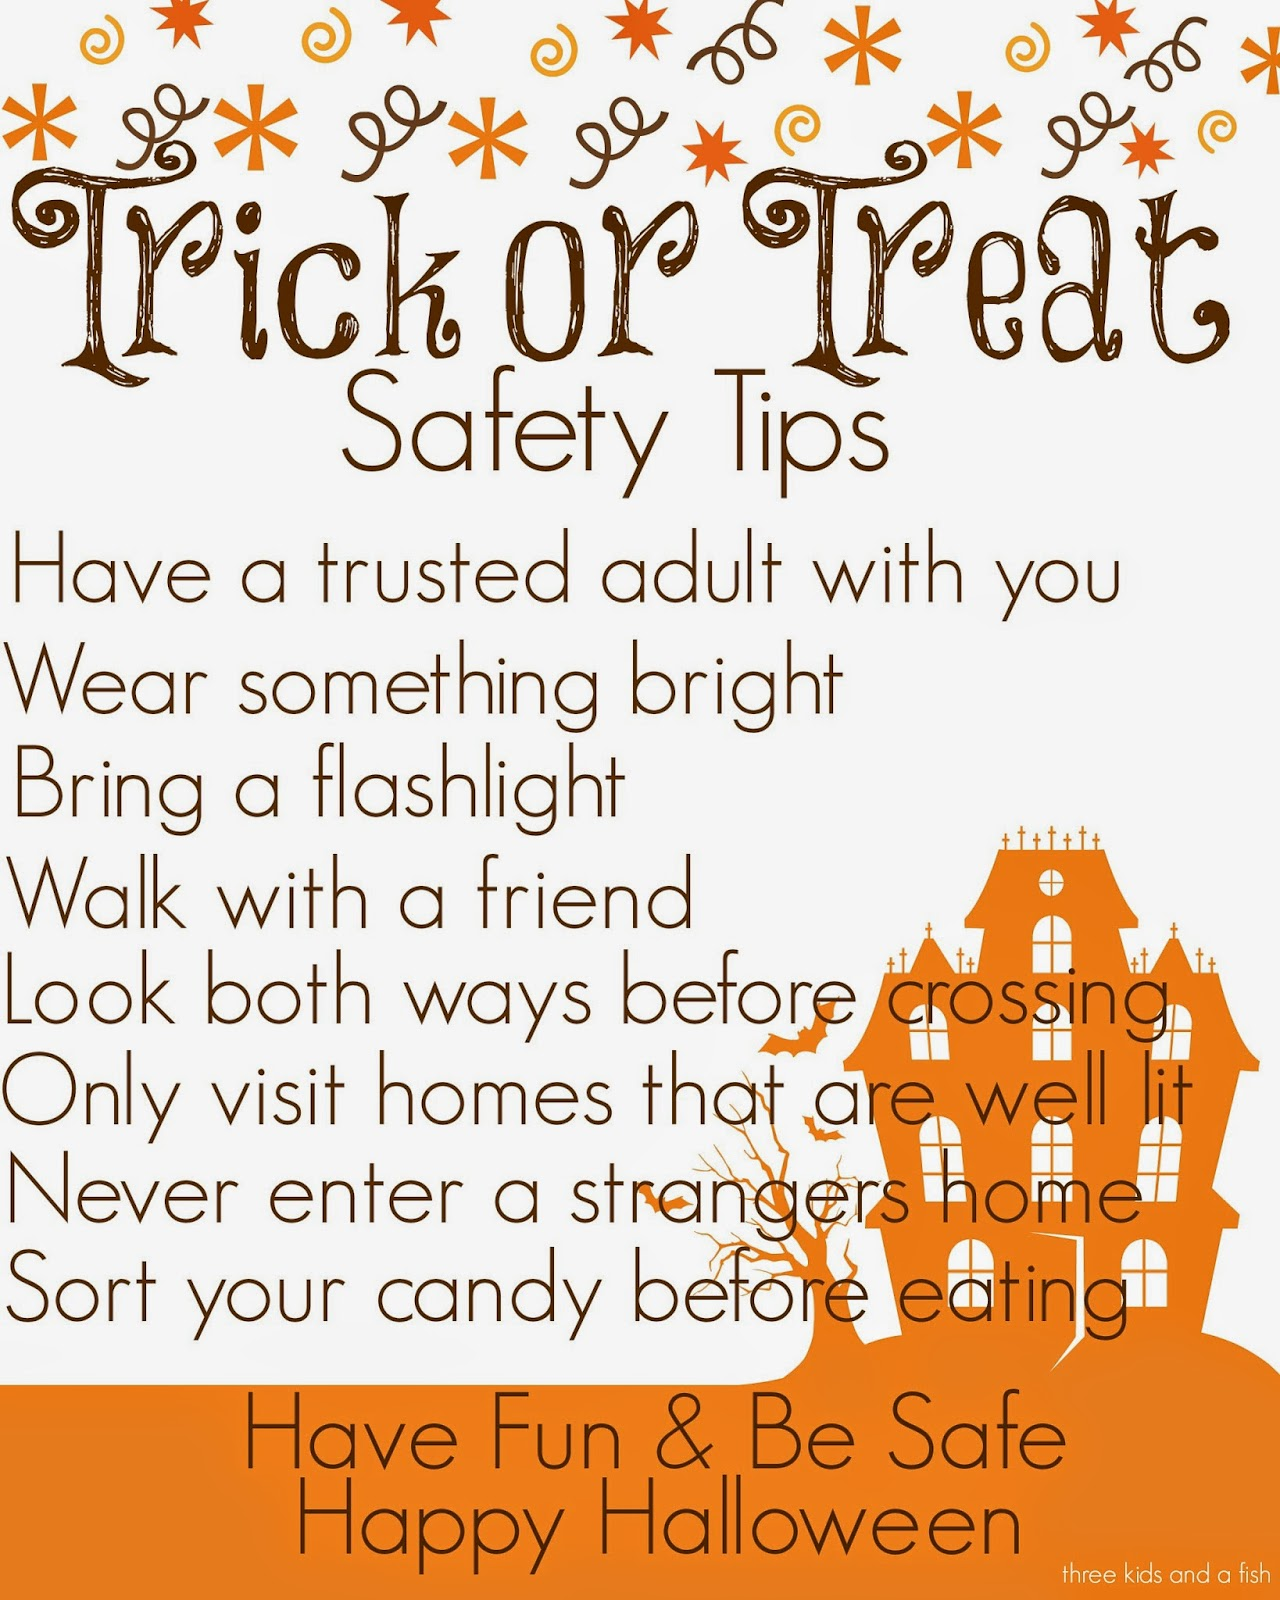 Additional safety tips to use this weekend!